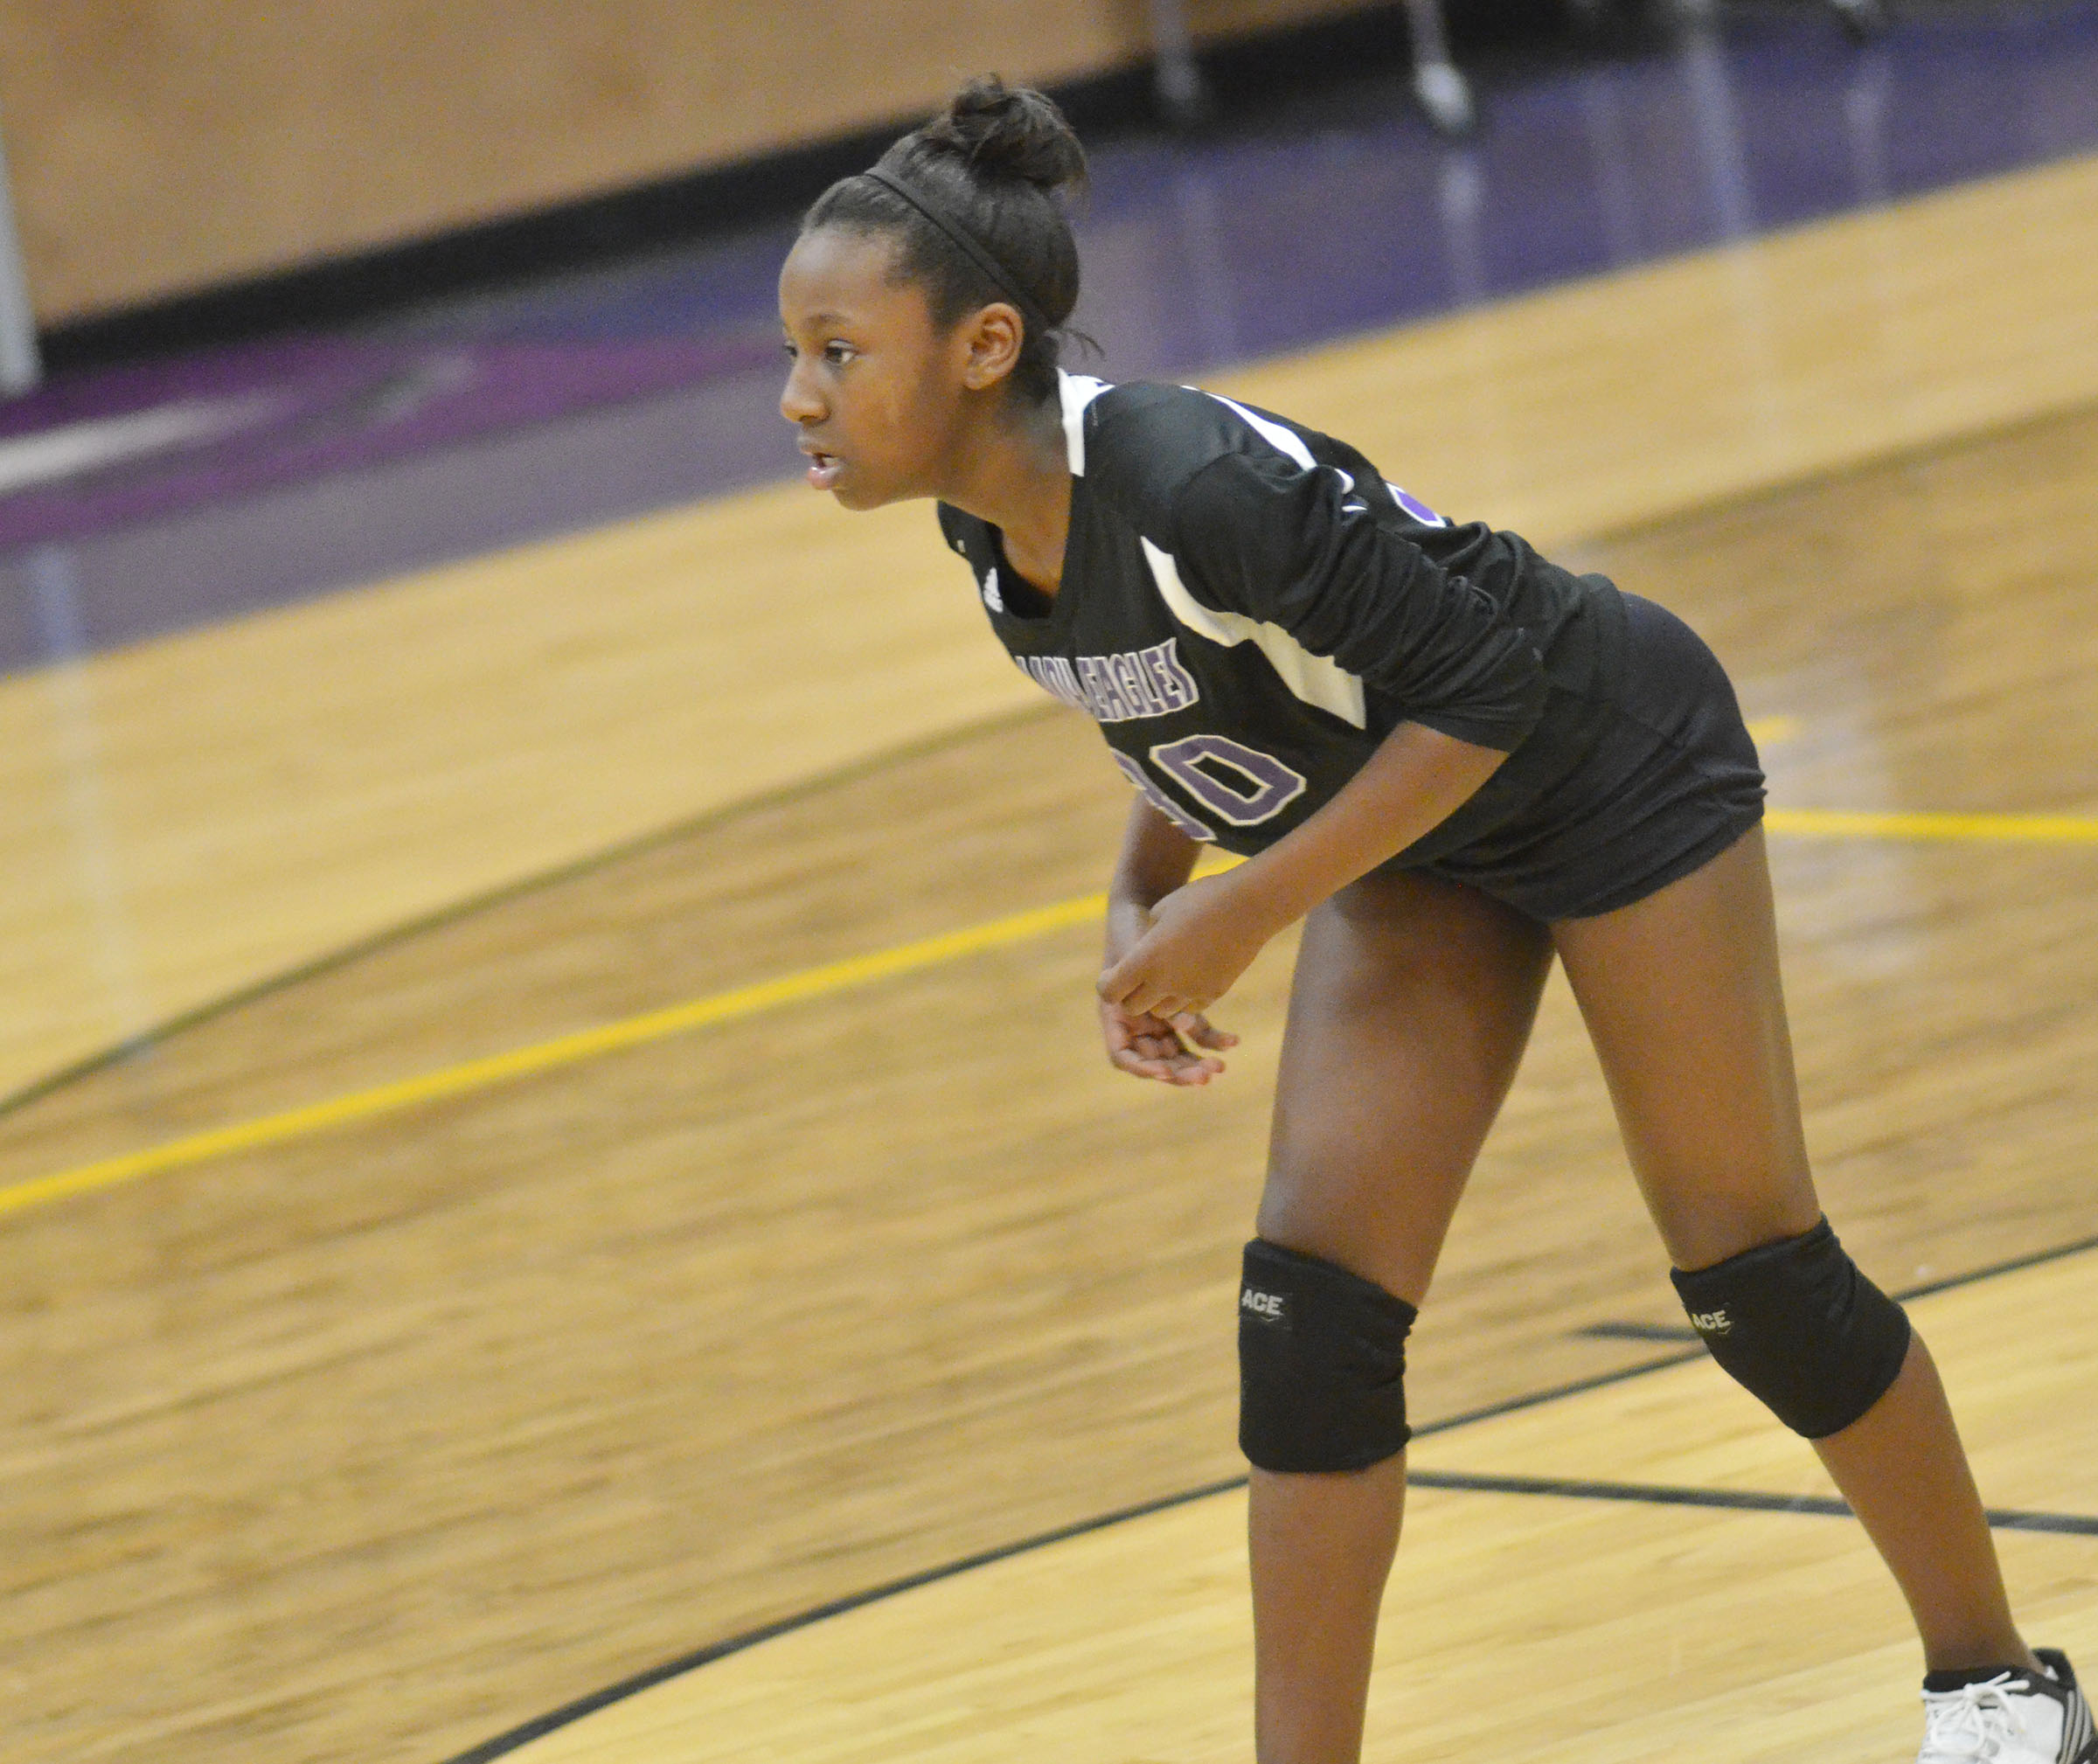 CMS seventh-grader Myricle Gholston watches the ball.